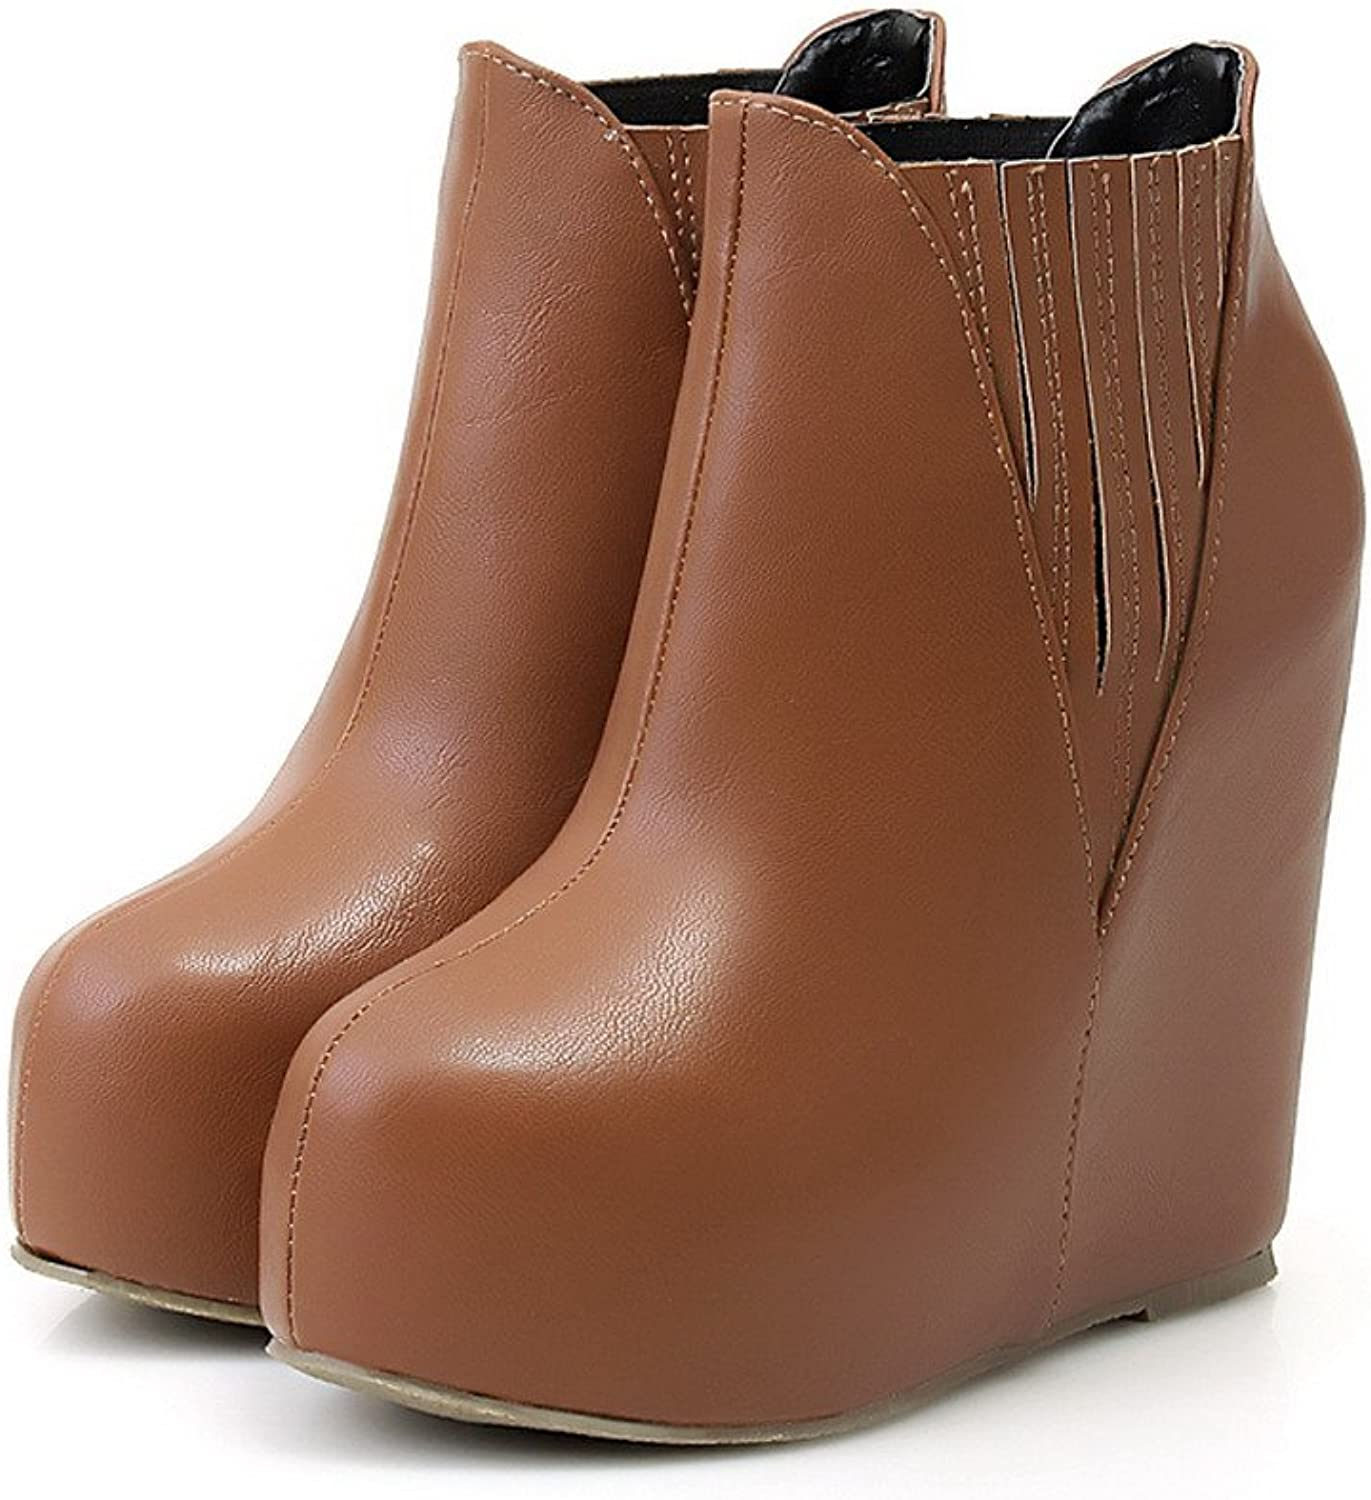 WeenFashion Womens Round Toe High Heels Soft Material Solid Boot with Wedge